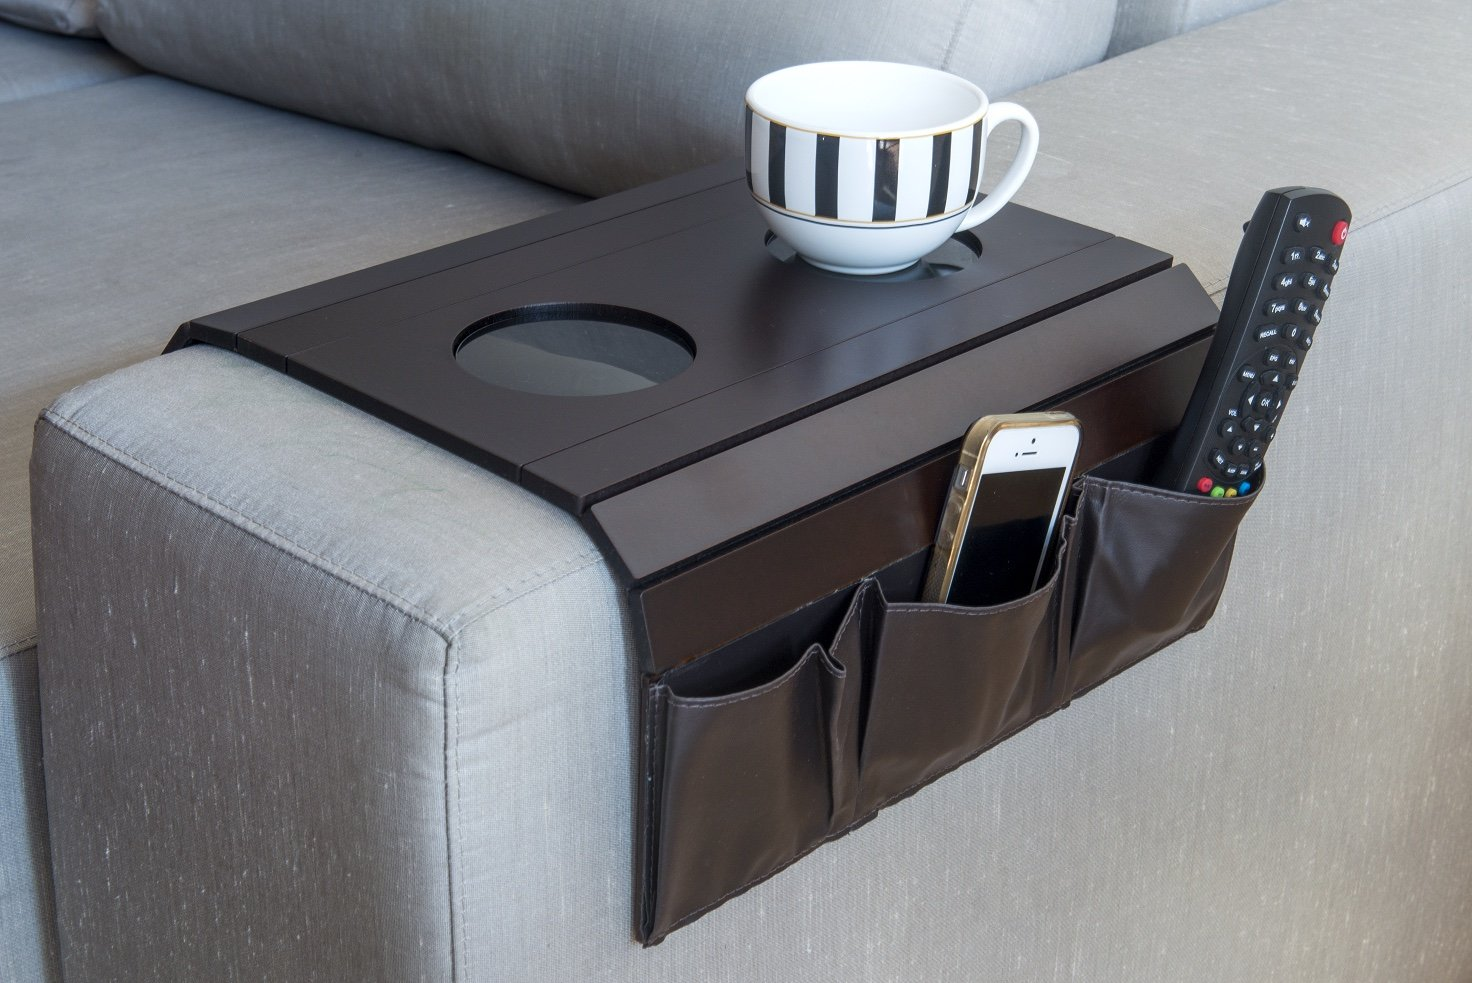 Sofa Arm Organizer Tray Cheap Arm Rest Table Find Arm Rest Table Deals On Line At Alibaba